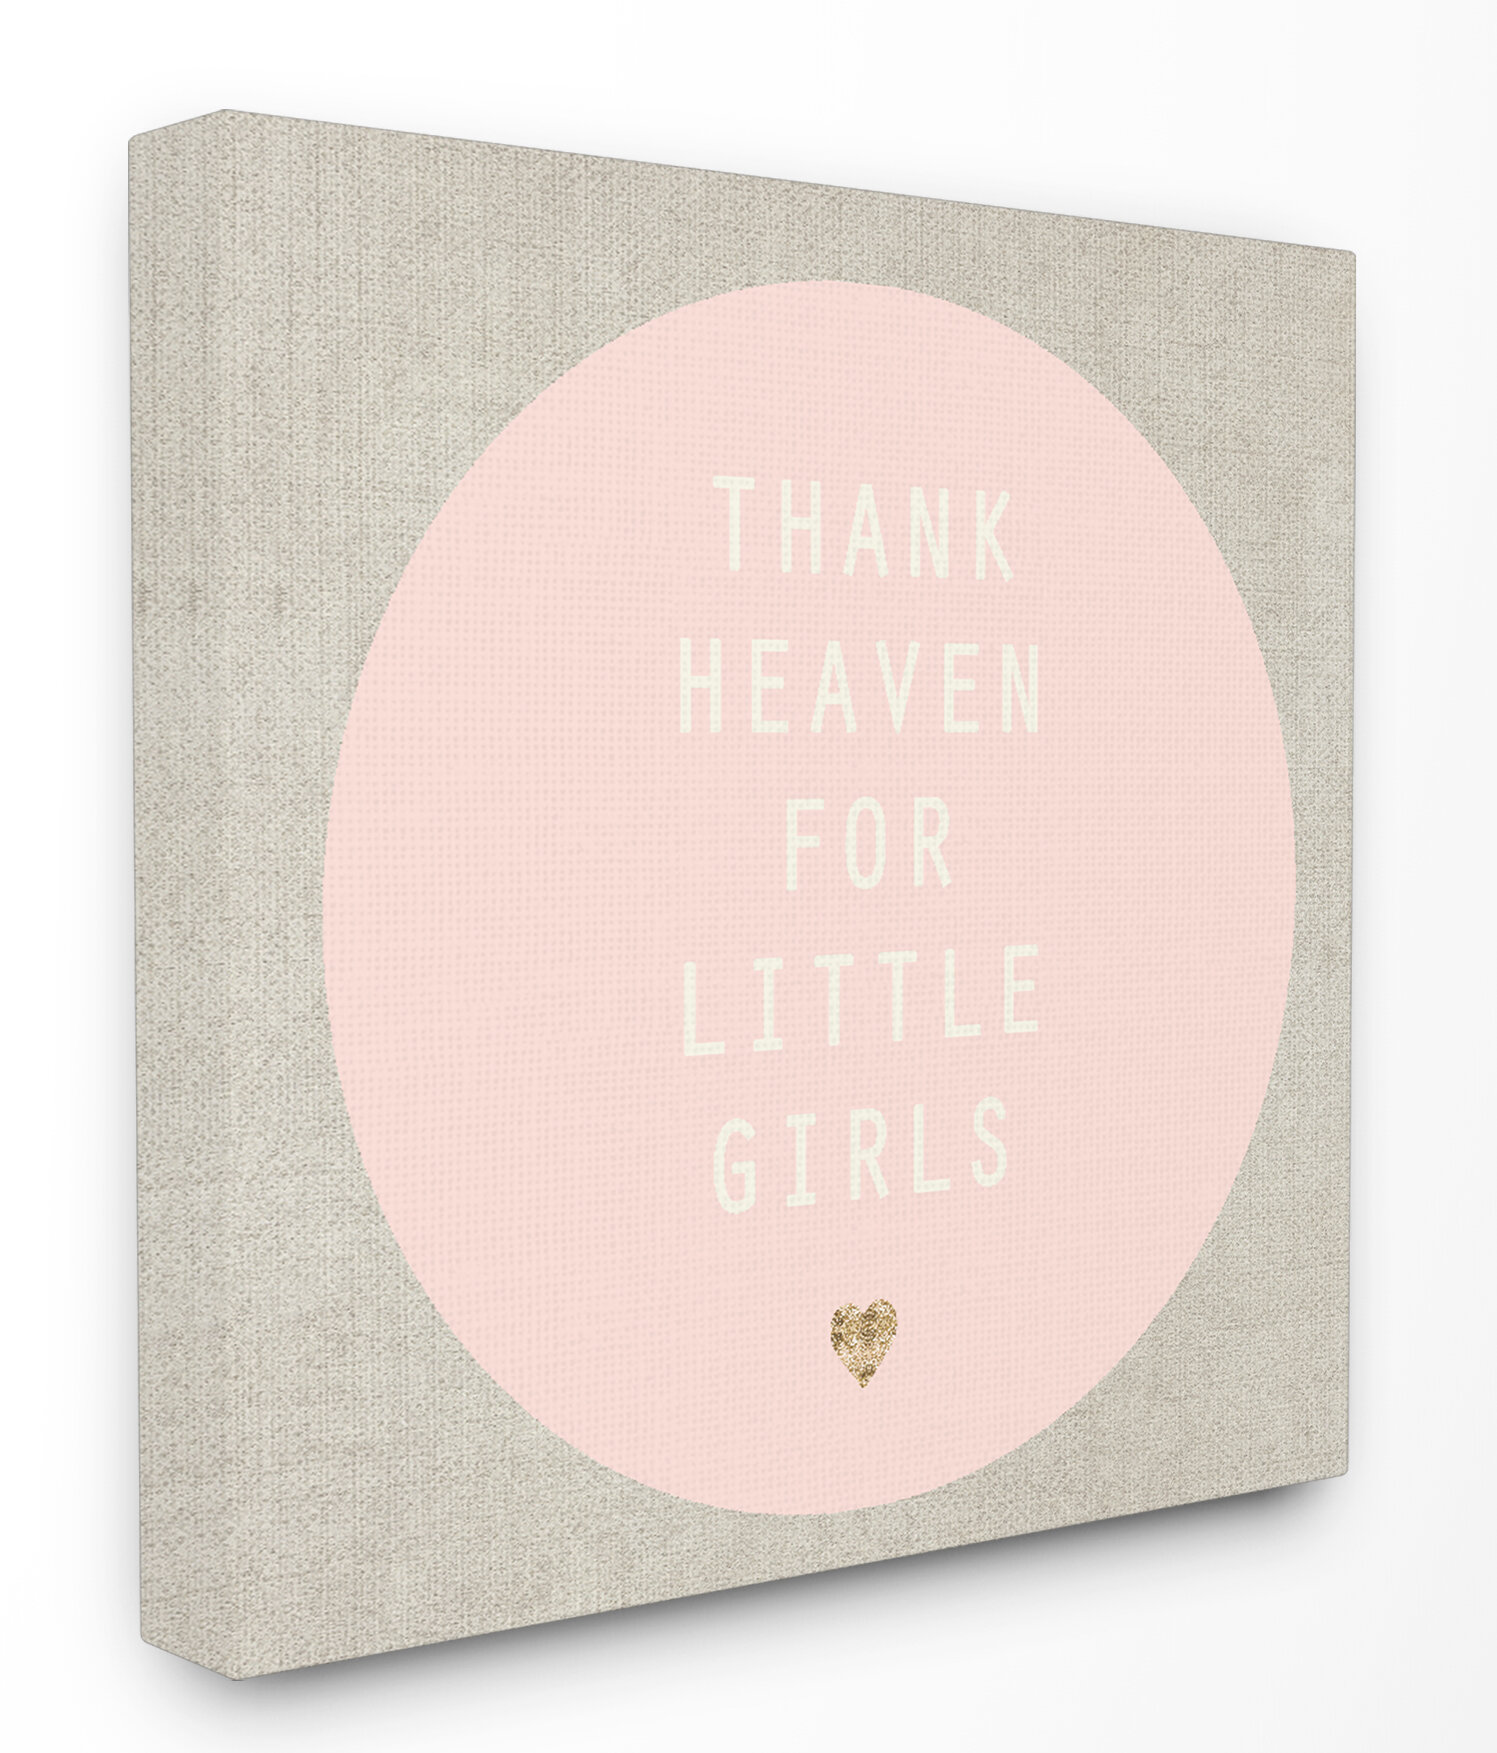 Thank heaven for little girls pink and tan stretched canvas wall art